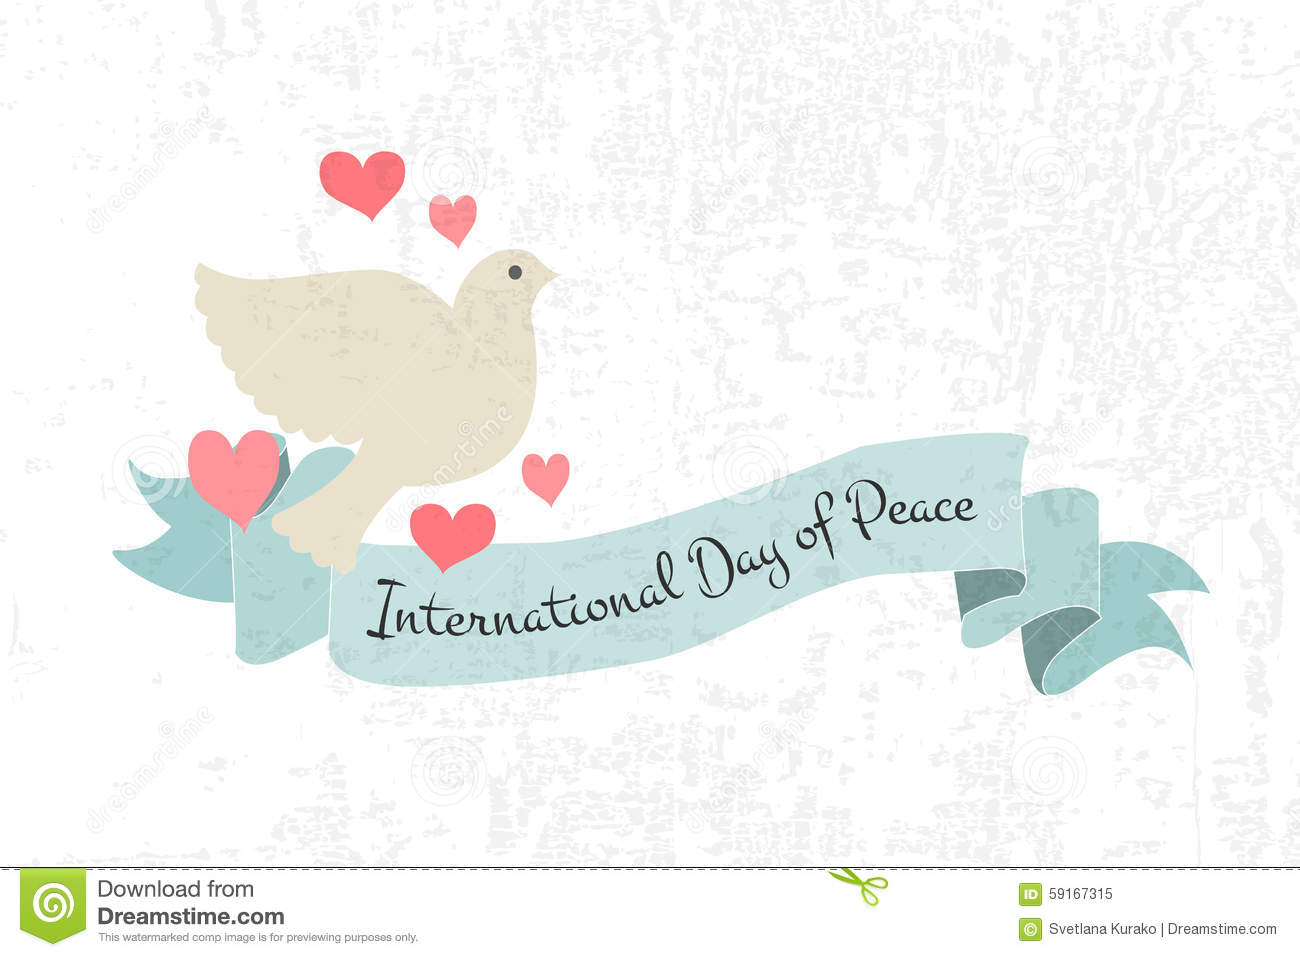 25 international day of peace greeting card pictures international day of peace dove badge greeting card m4hsunfo Images